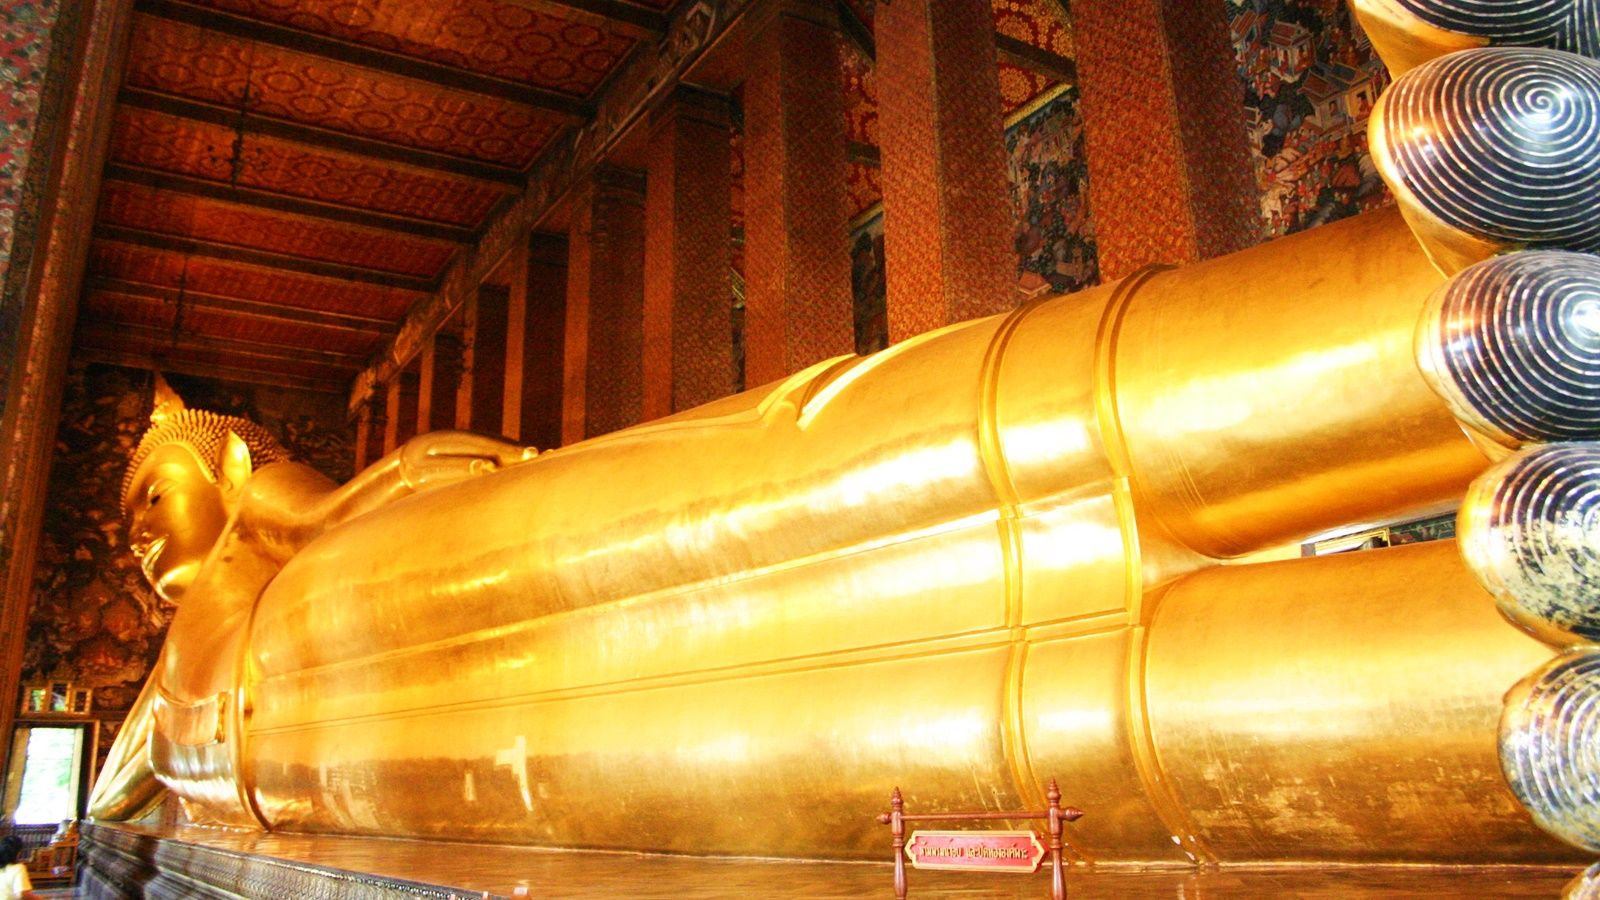 Wat Pho - Temple of Reclining Buddha